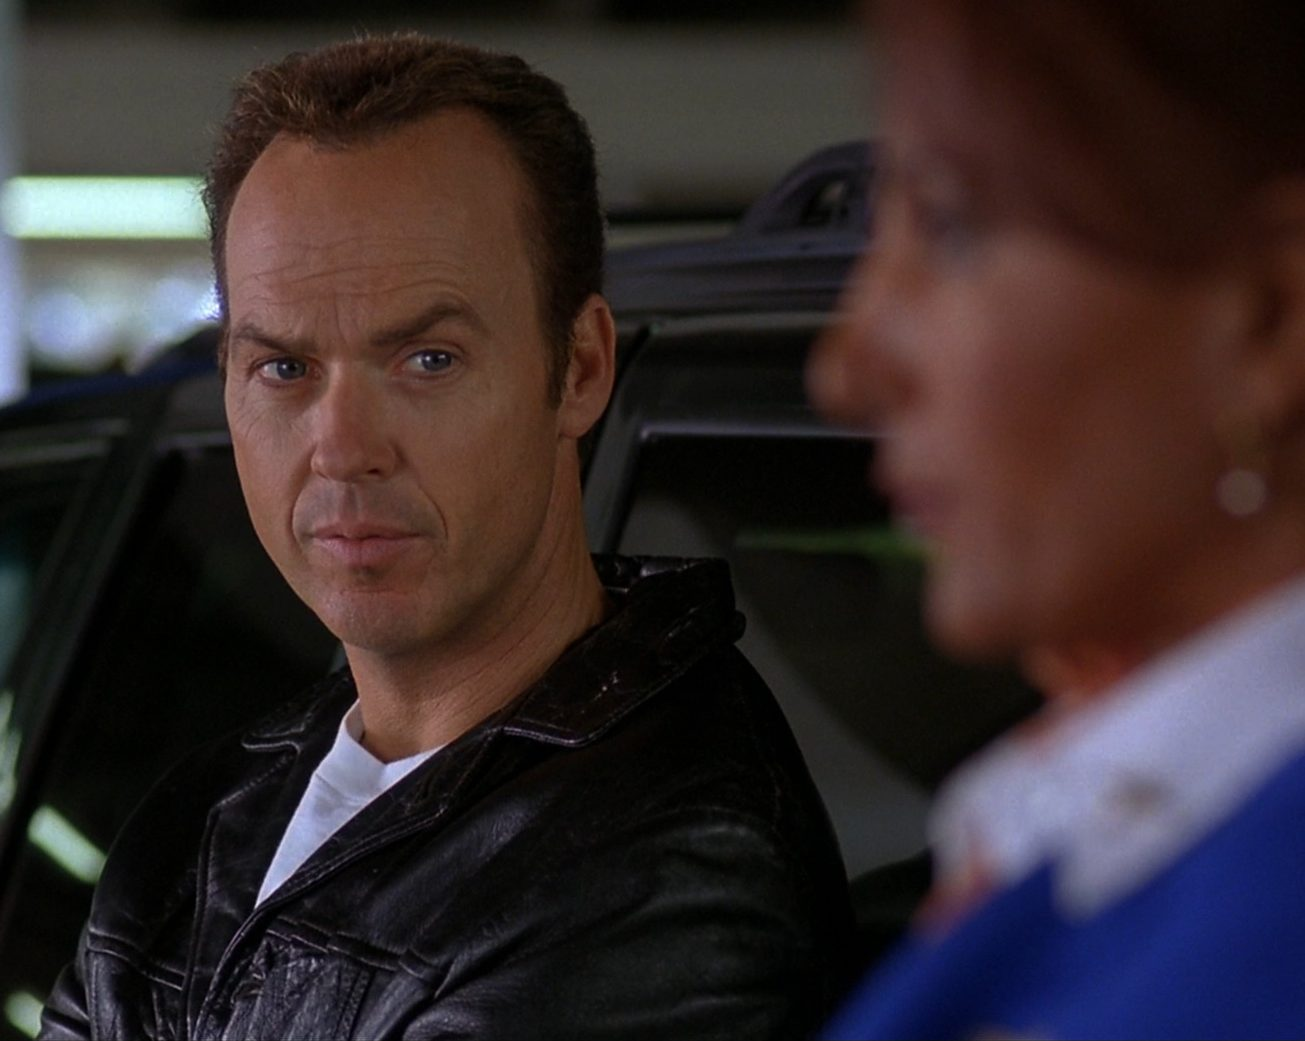 michael keaton as ray nickolette e1614776533765 30 Things You Probably Didn't Know About Jackie Brown